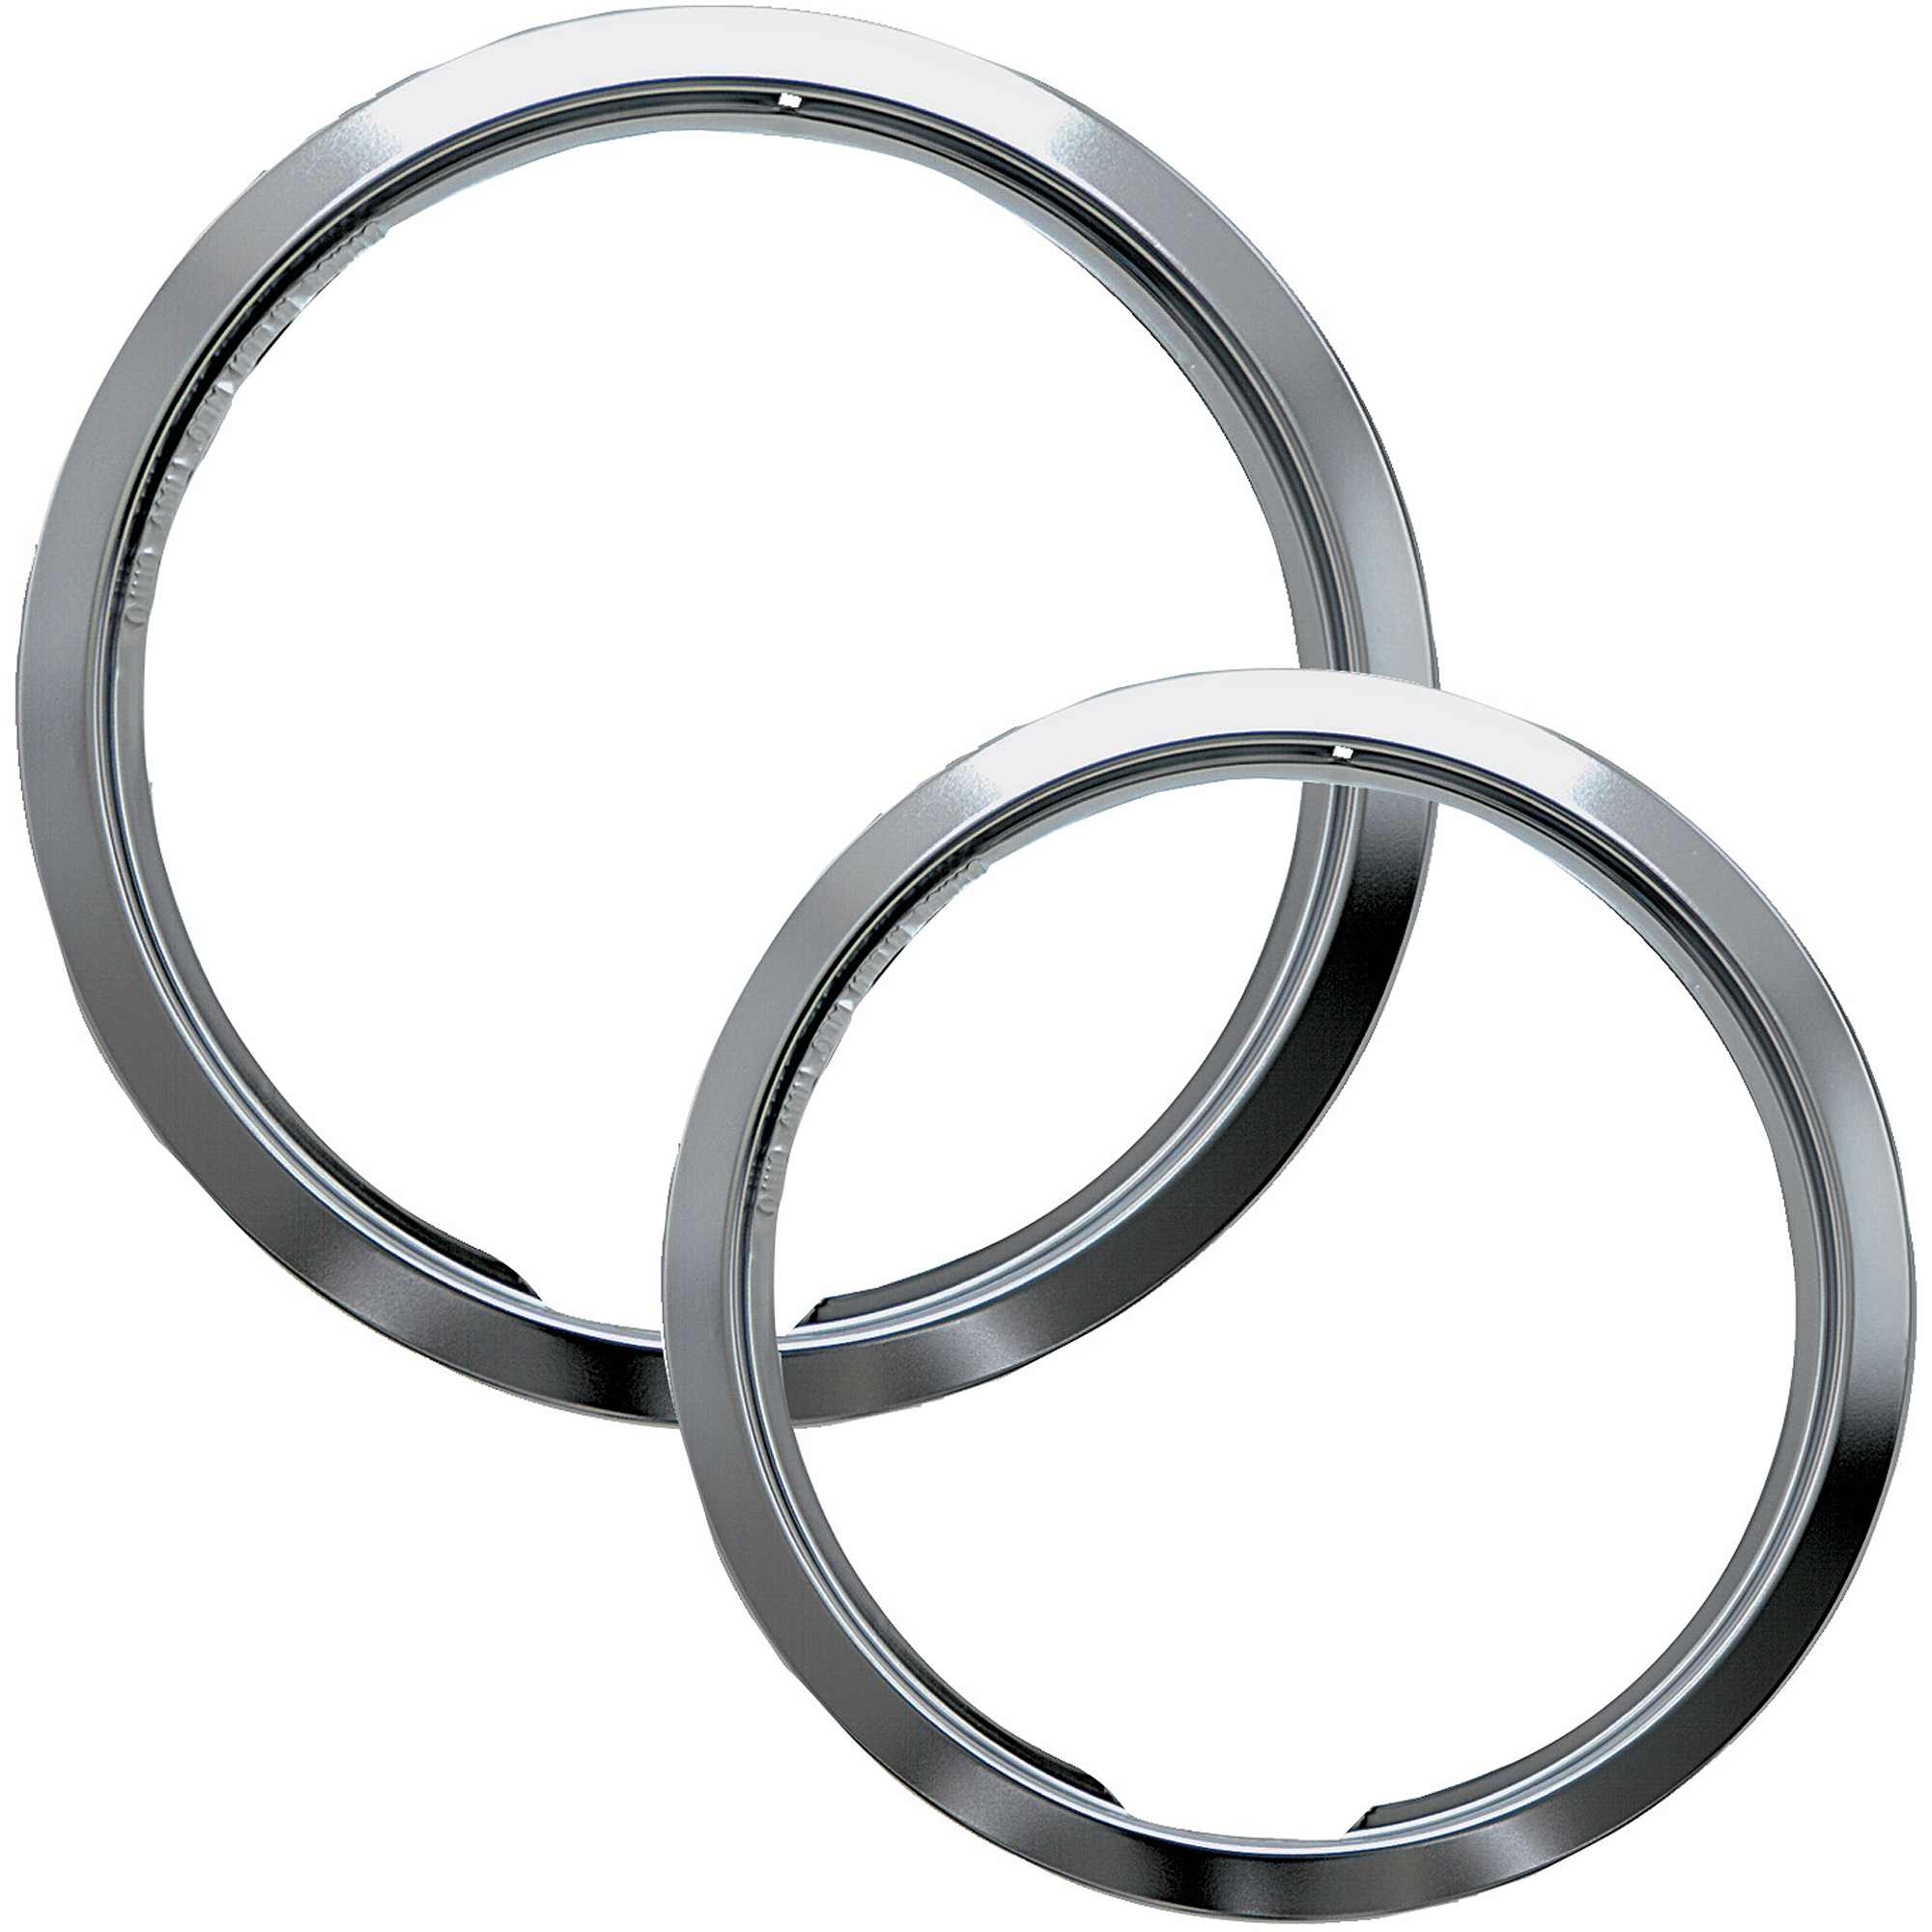 Range Kleen 2-Piece Trim Ring, Style E fits Hinged Electric Ranges Amana/Frigidaire/Maytag/Whirlpool, Chrome